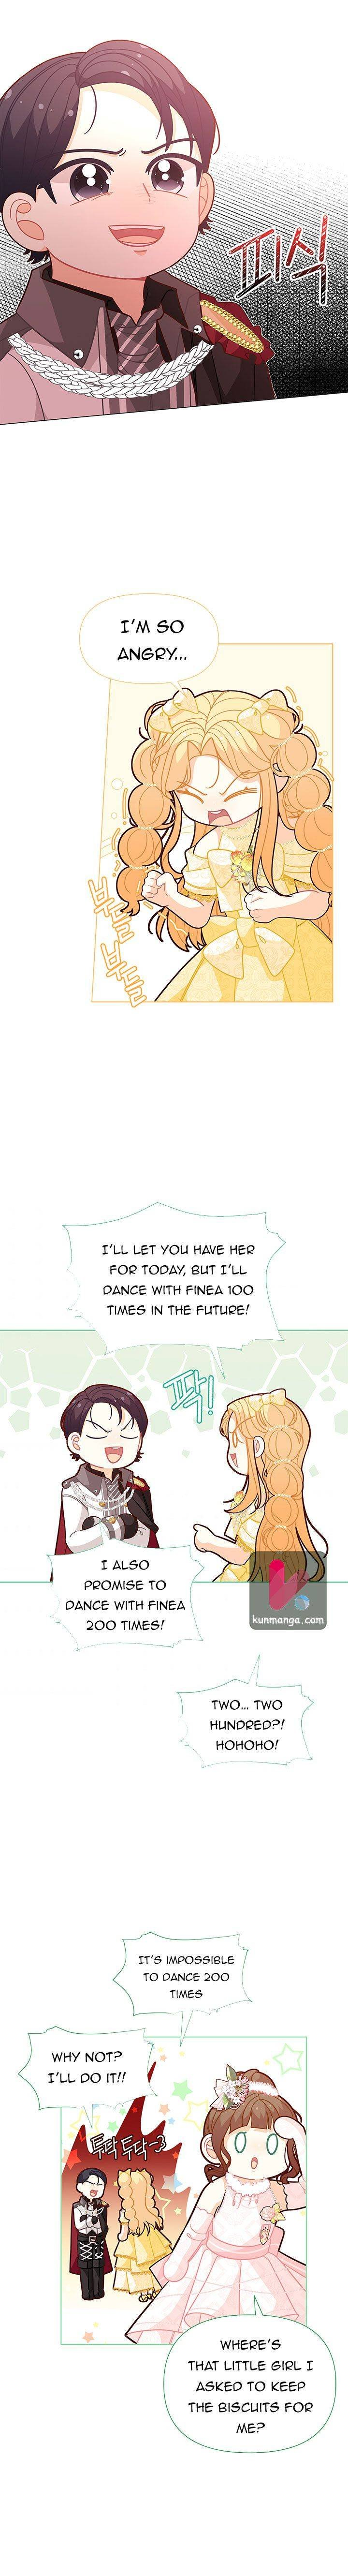 Originally A Lady With One Line - chapter 45.5 - #2